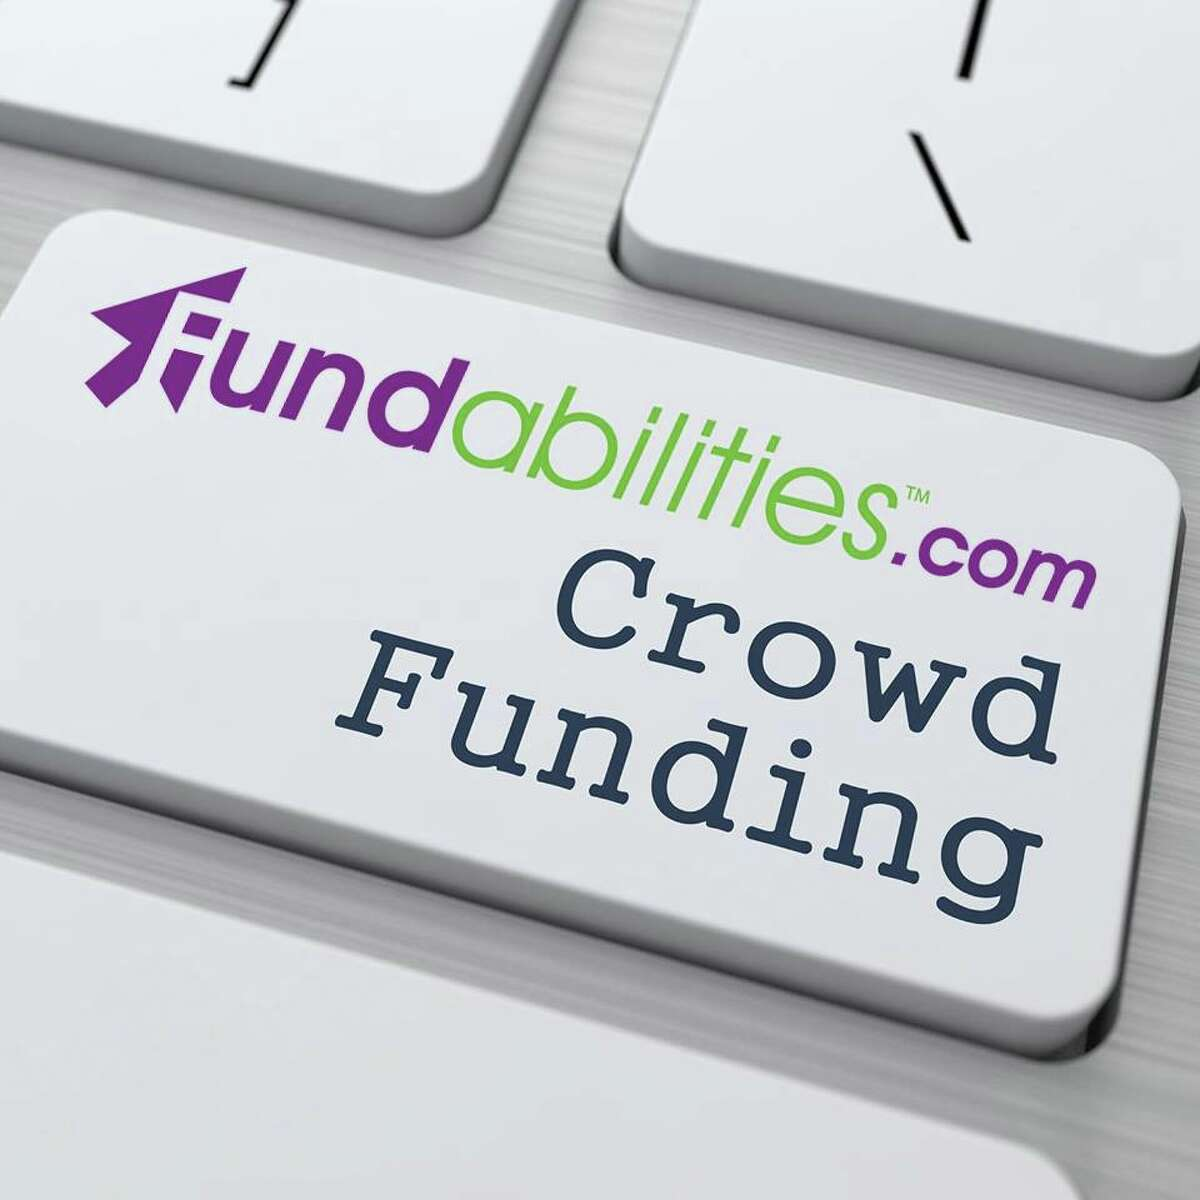 The Schenectady-based crowdfunding company Fundabilities helped to launch a campaign to raise money for schools